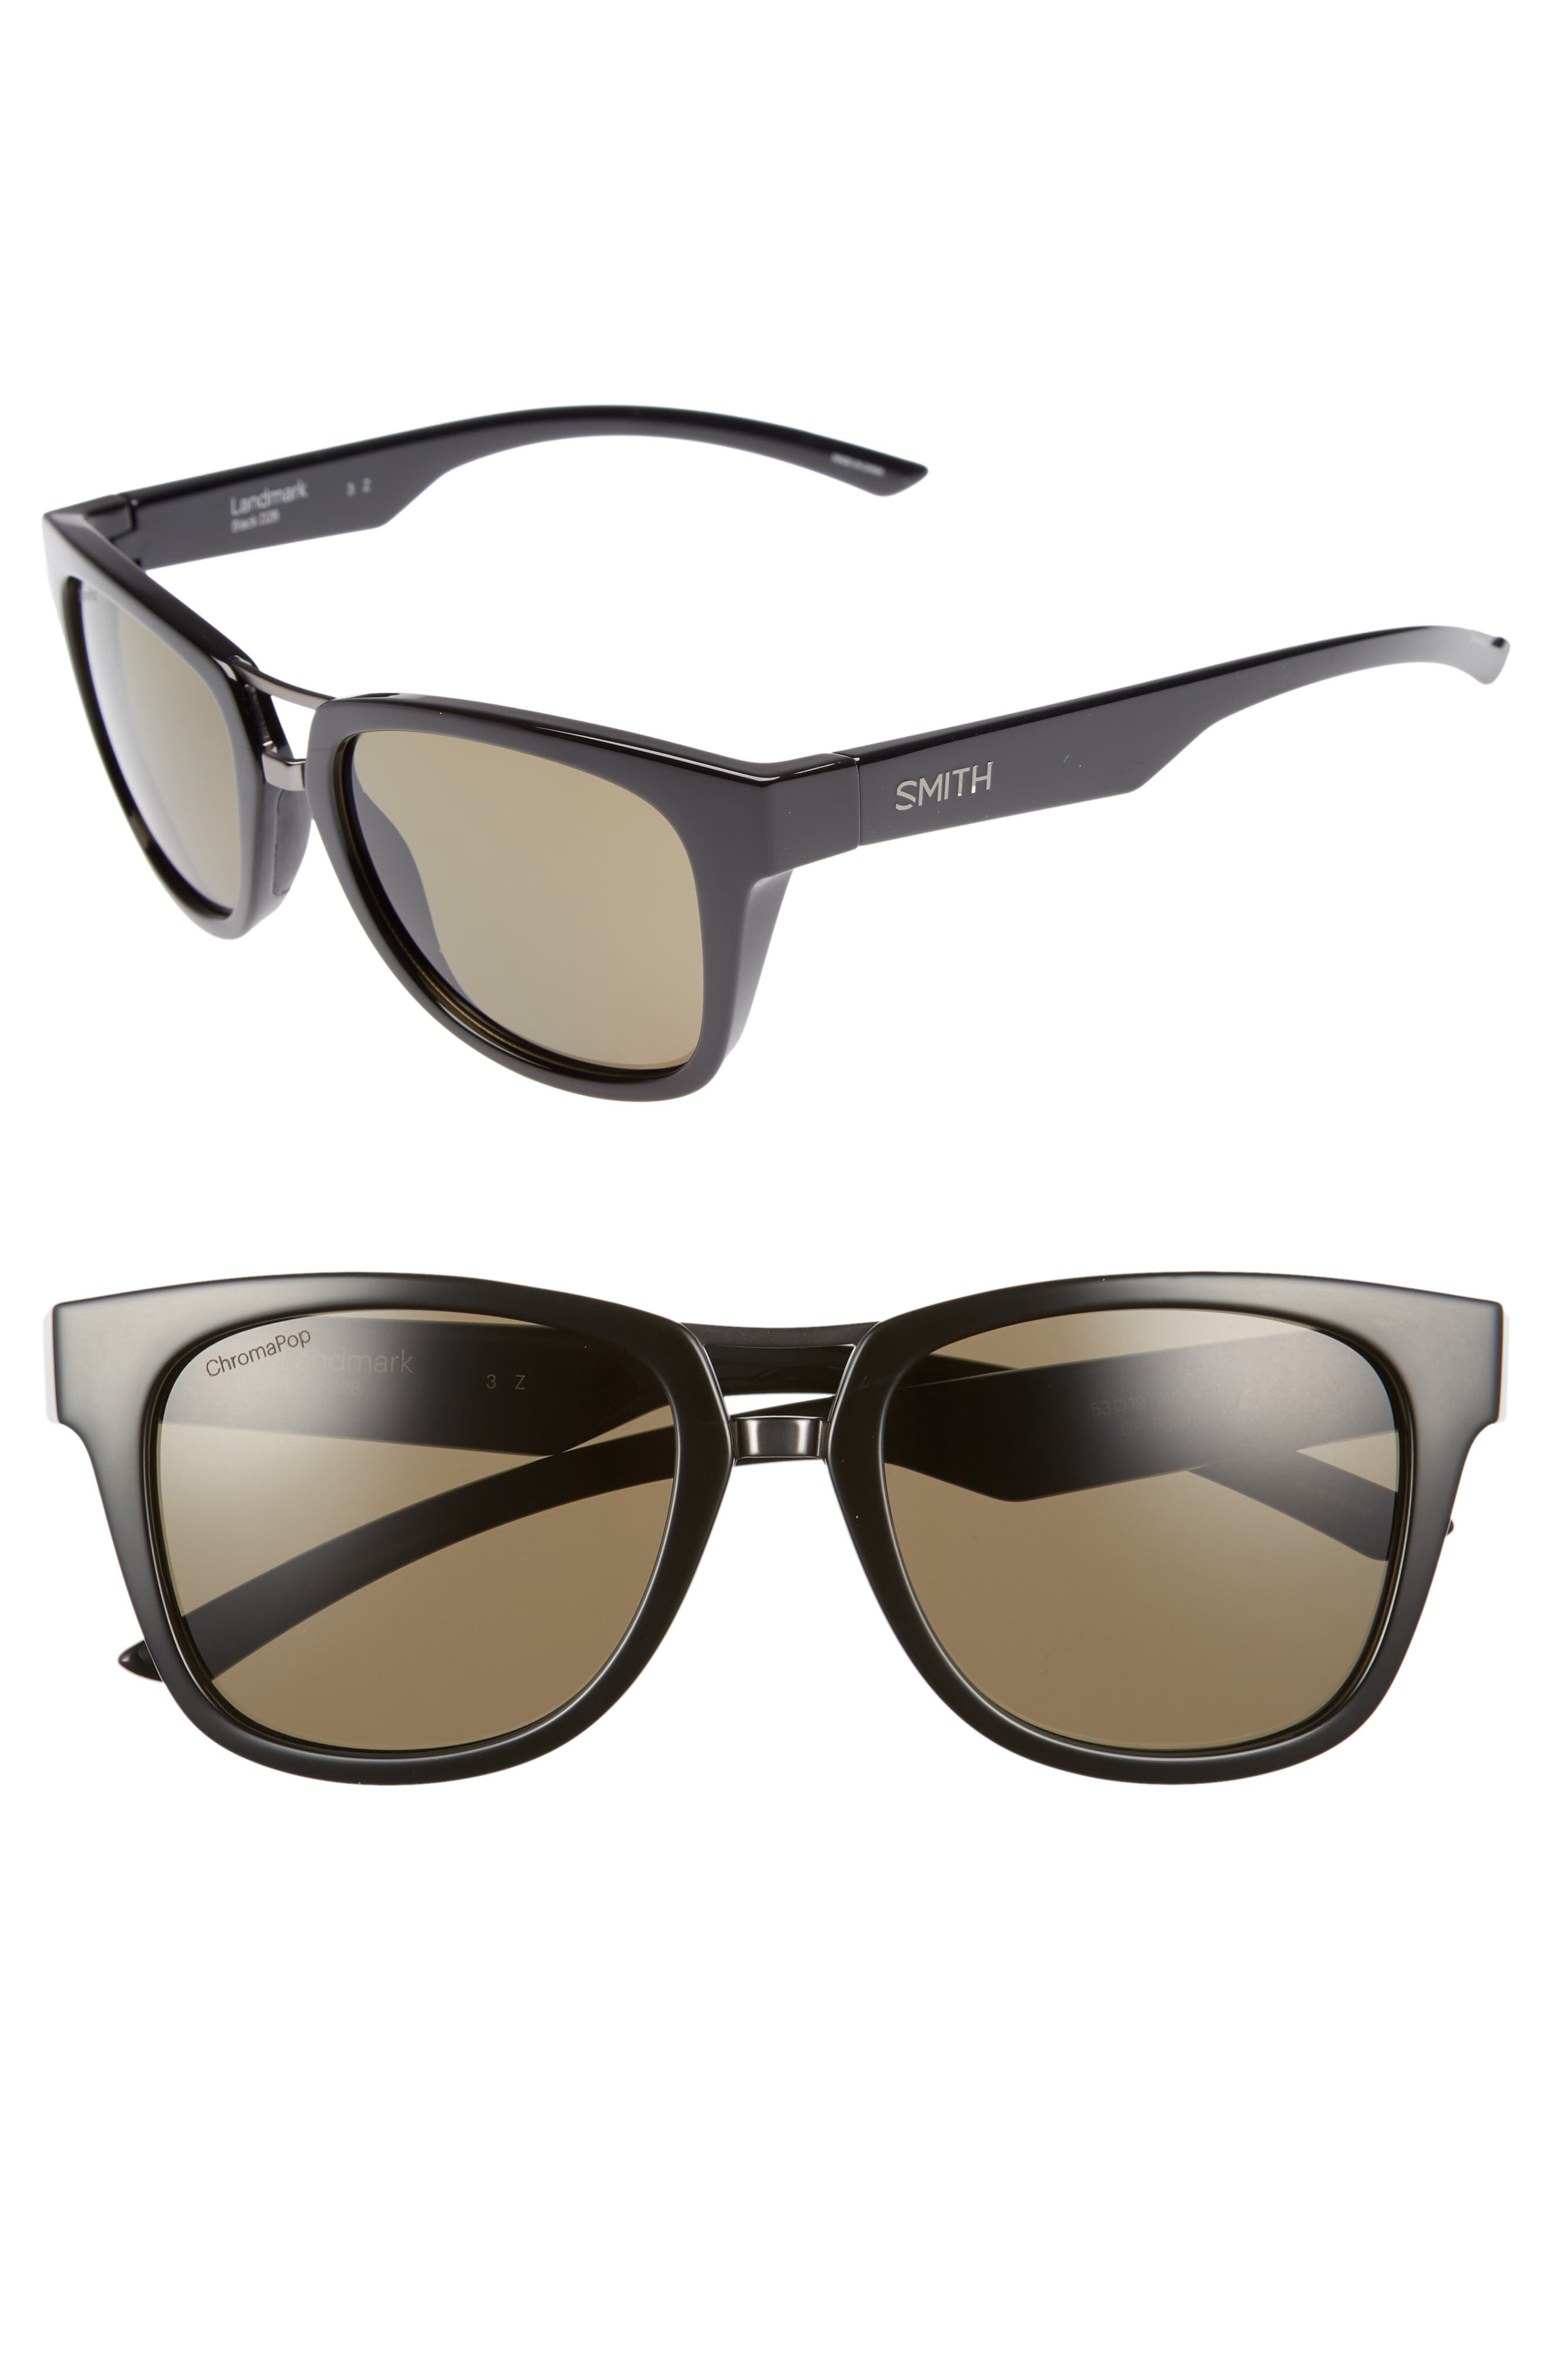 SMITH LANDMARK 53MM CHROMAPOP(TM) POLARIZED SUNGLASSES - BLACK